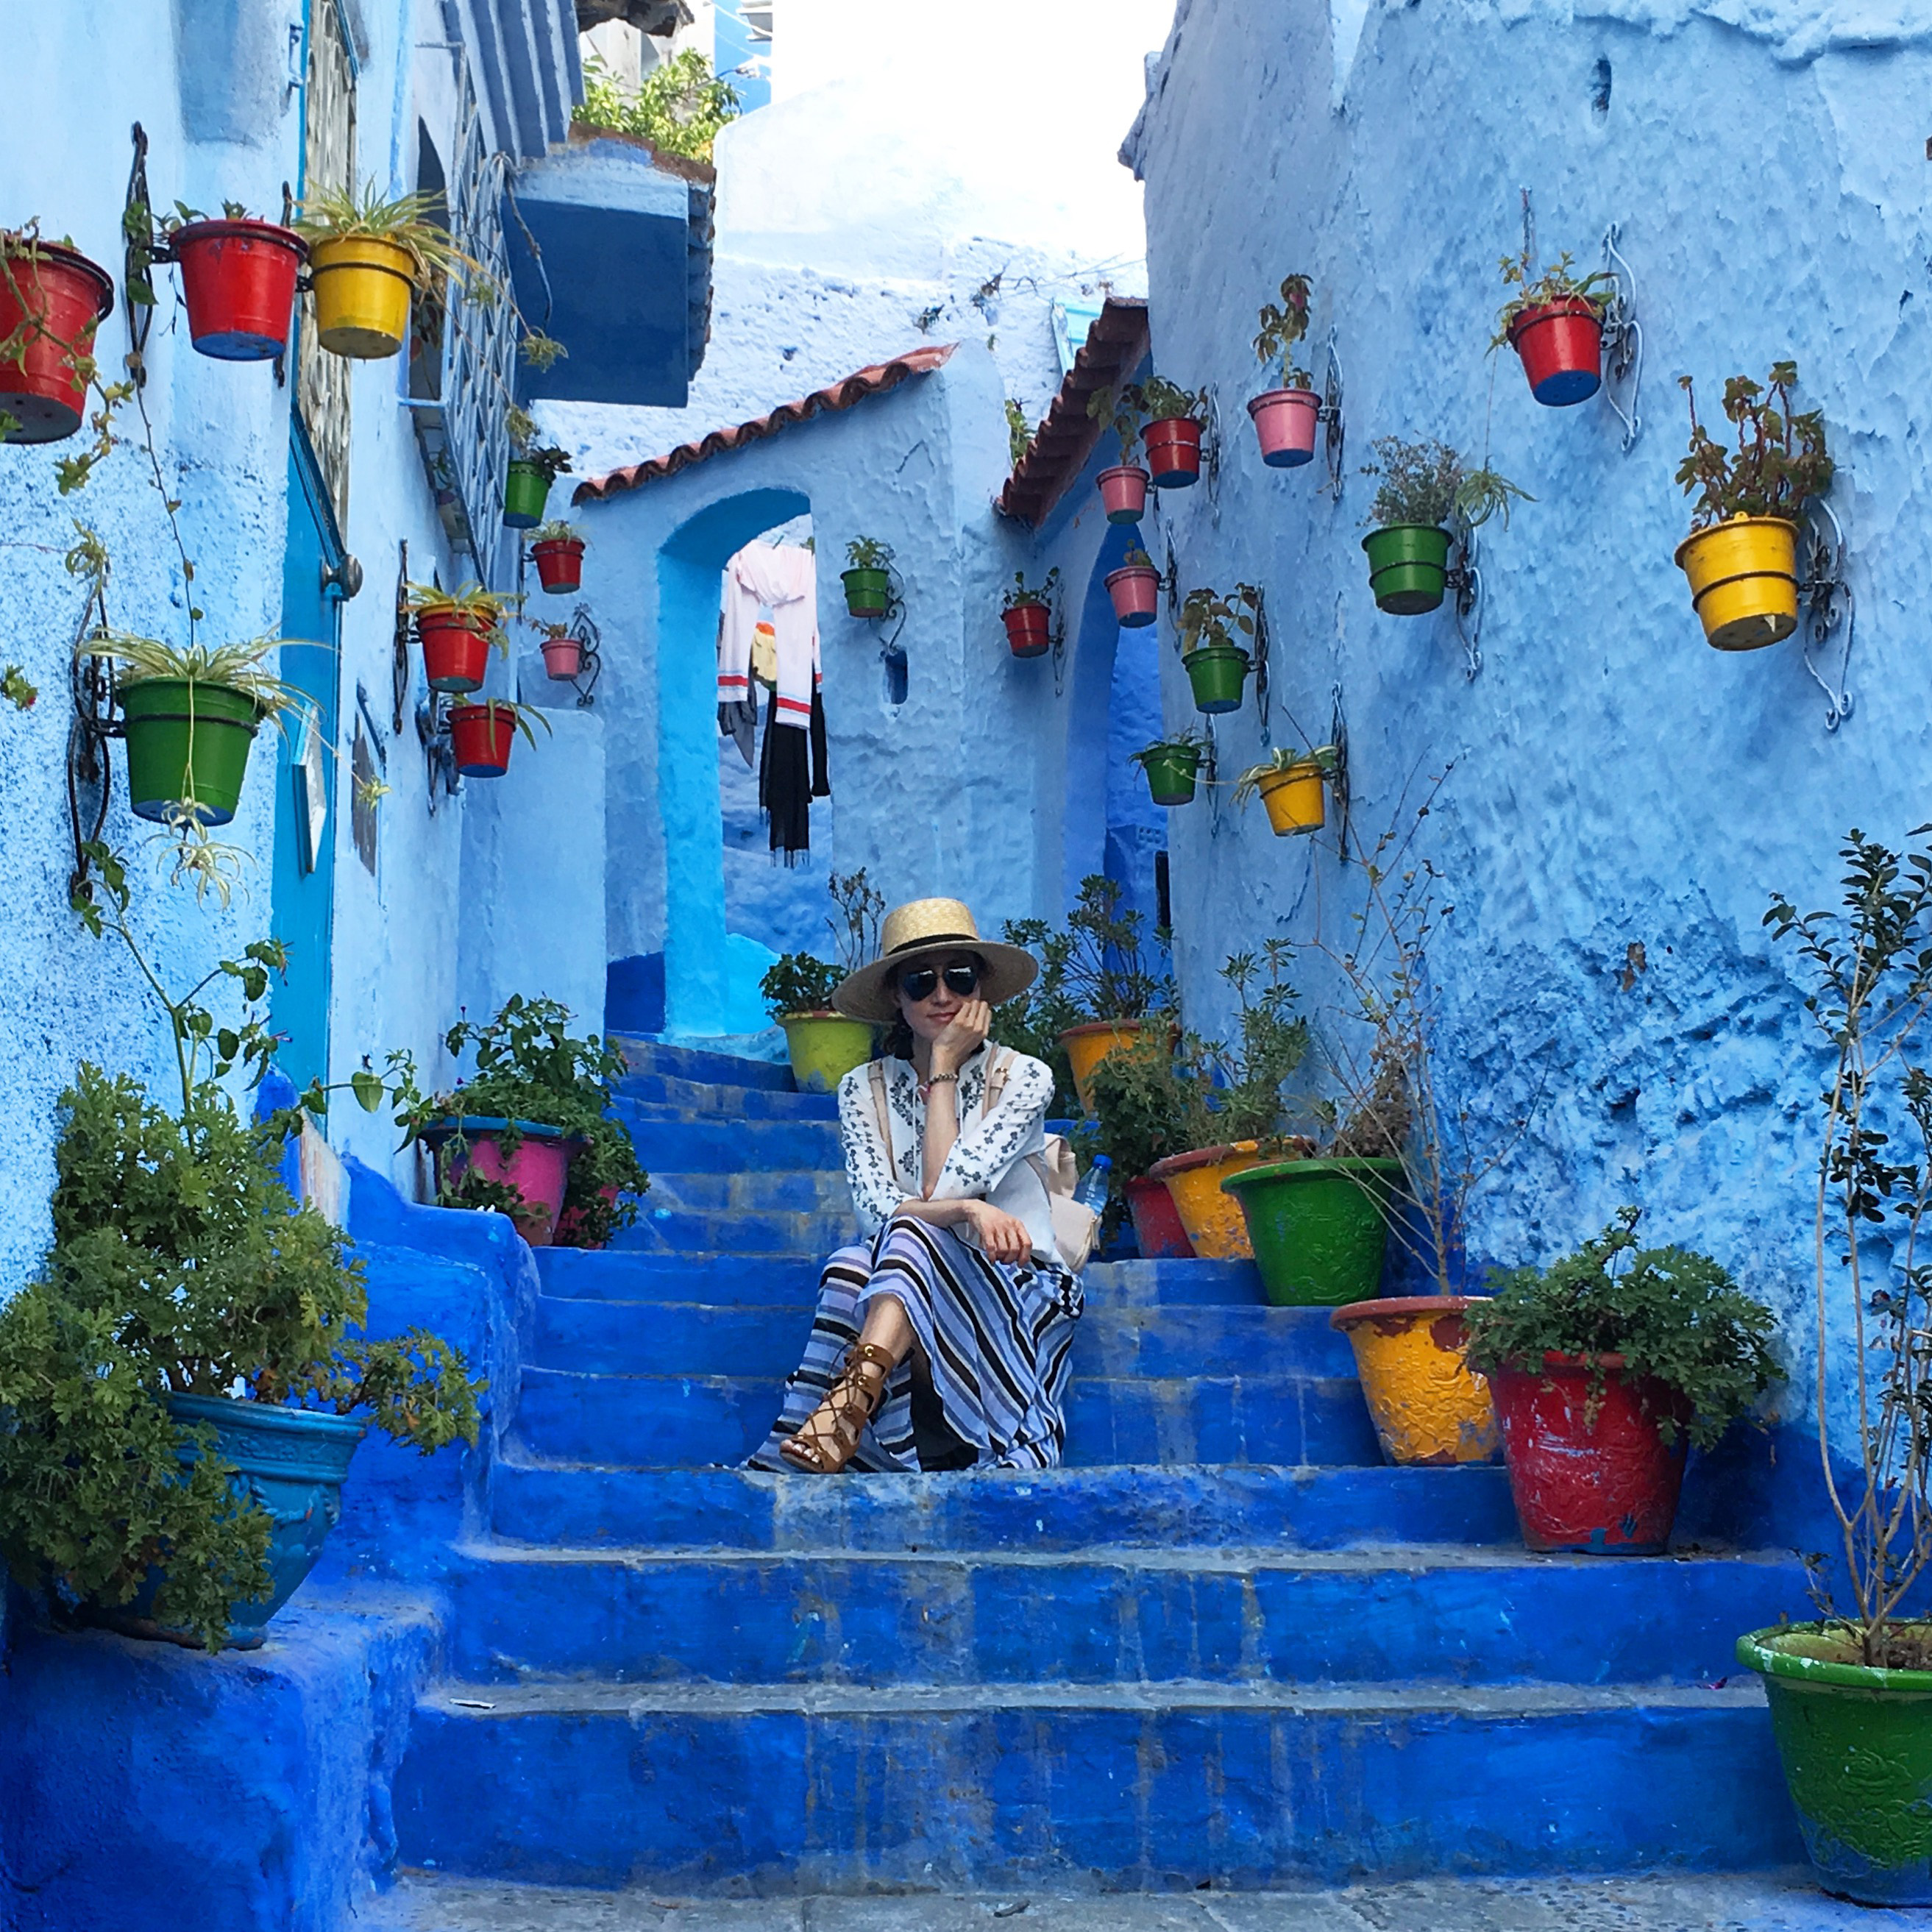 Chaouen Morocco Good Chefchaouen Morocco Market With